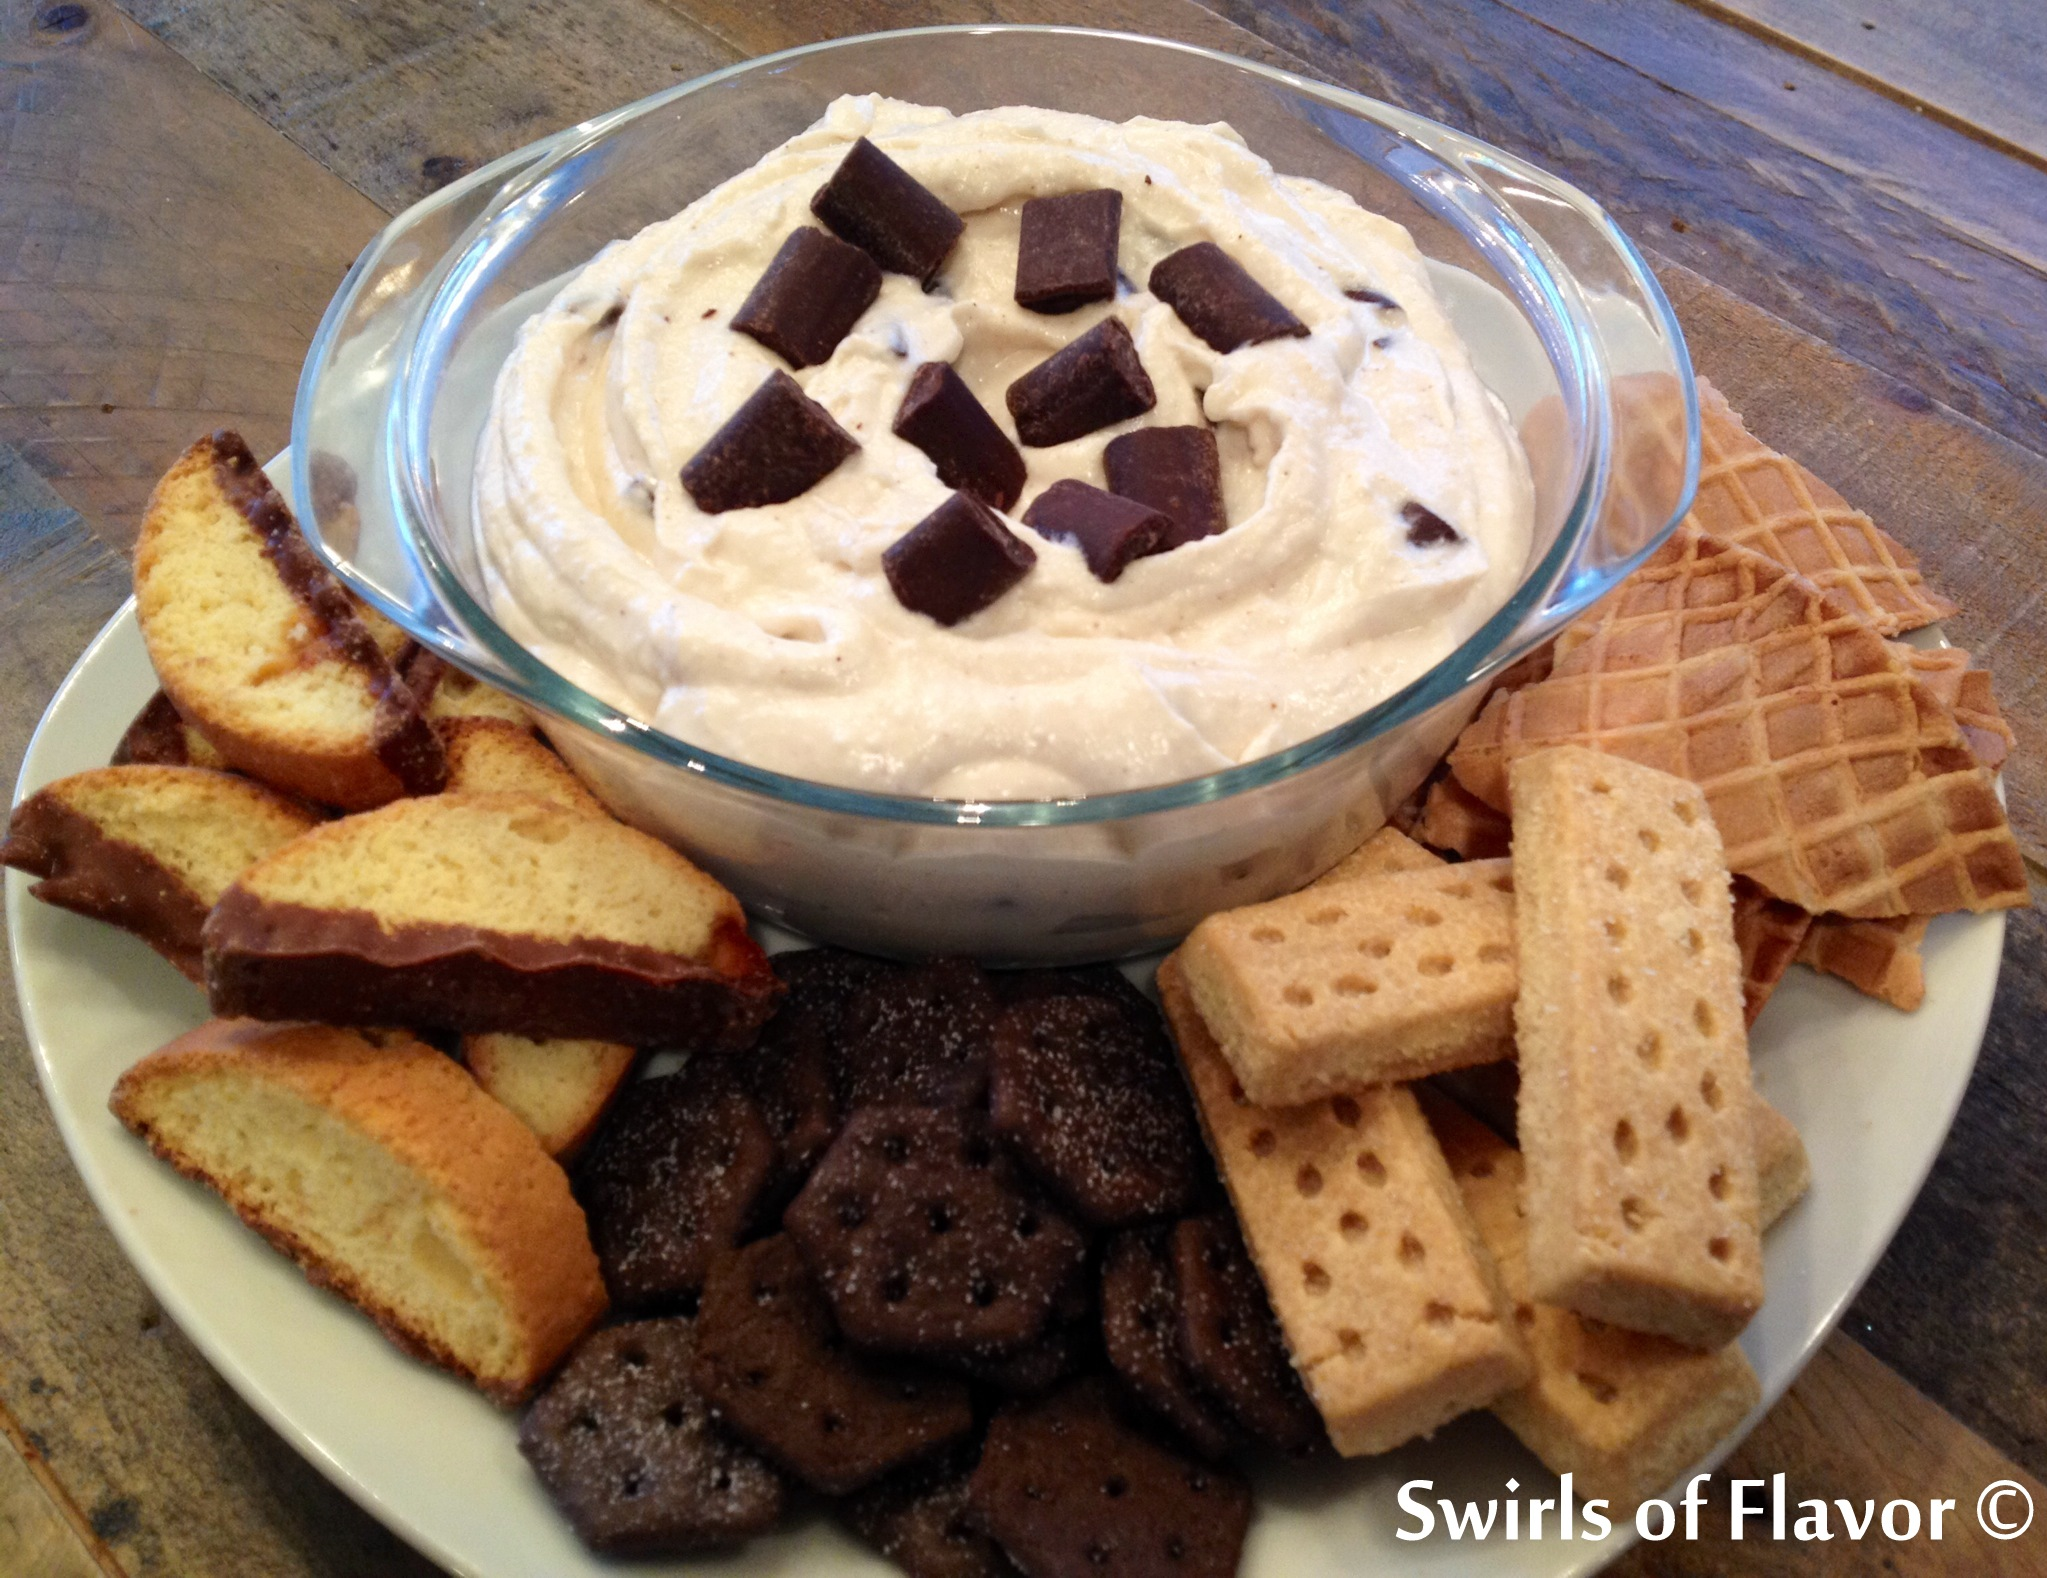 Cannoli dip with assorted dippers